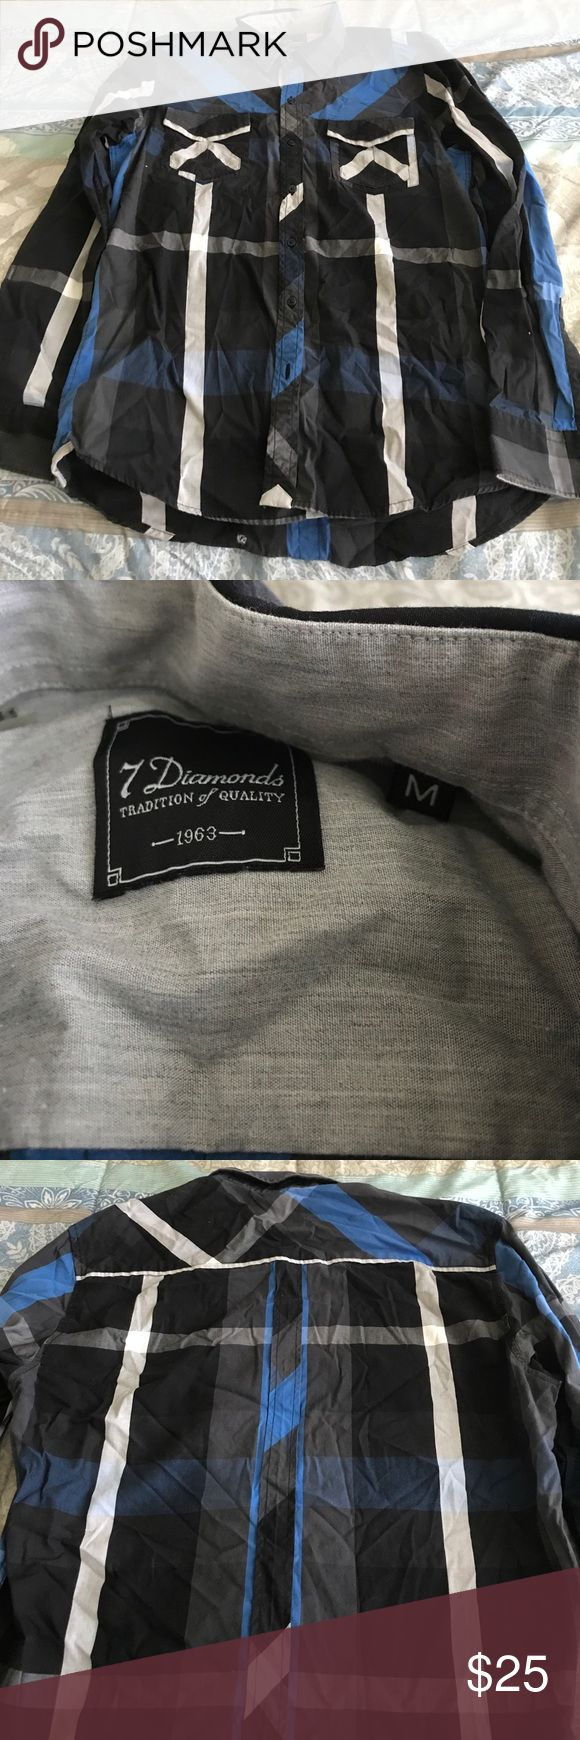 7 diamond button up Grey,blue and black. Only worn once 7 Diamonds Shirts Dress Shirts